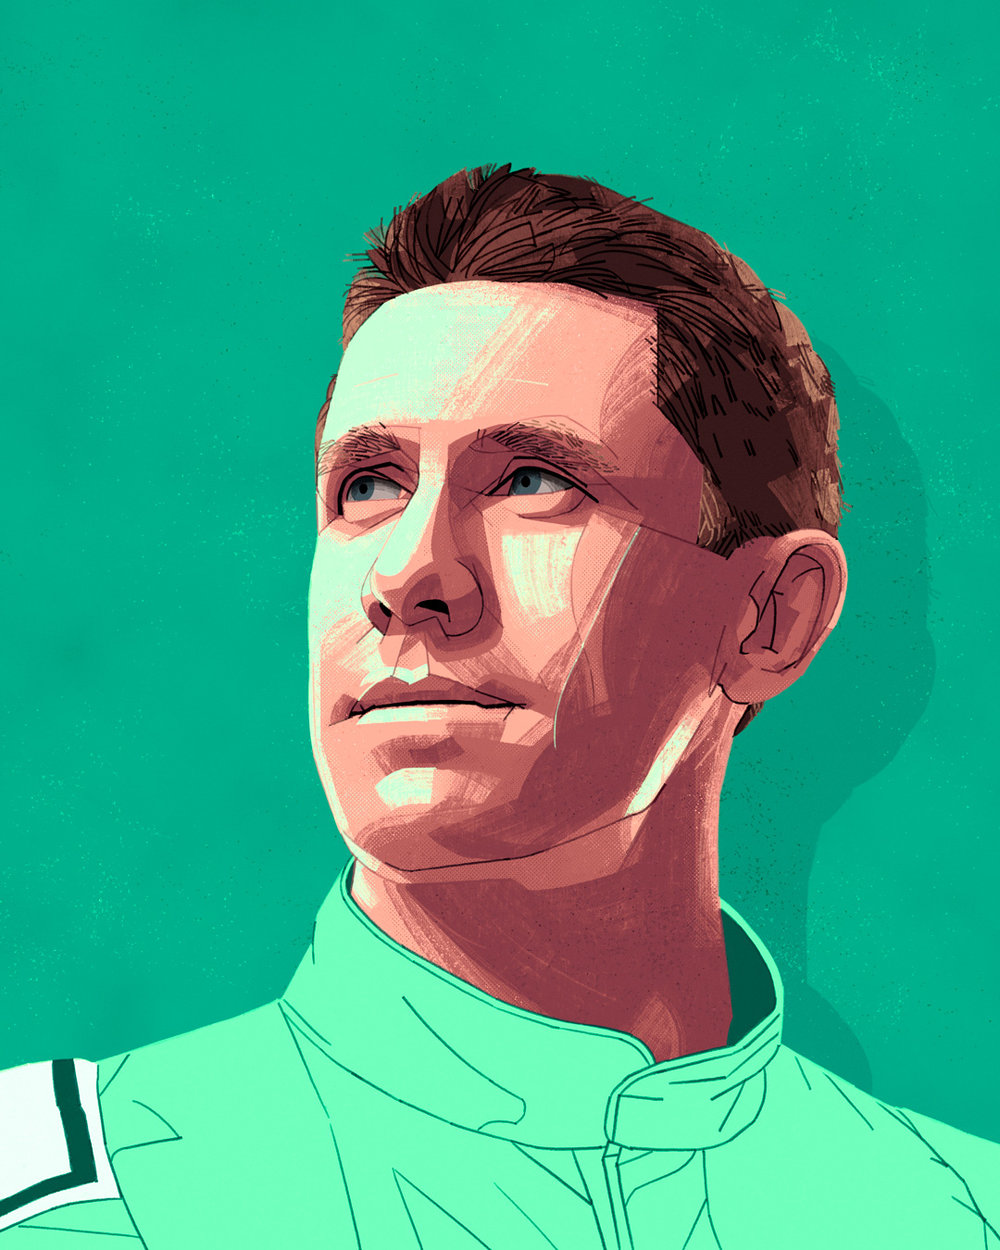 rs-nascar-carledwards